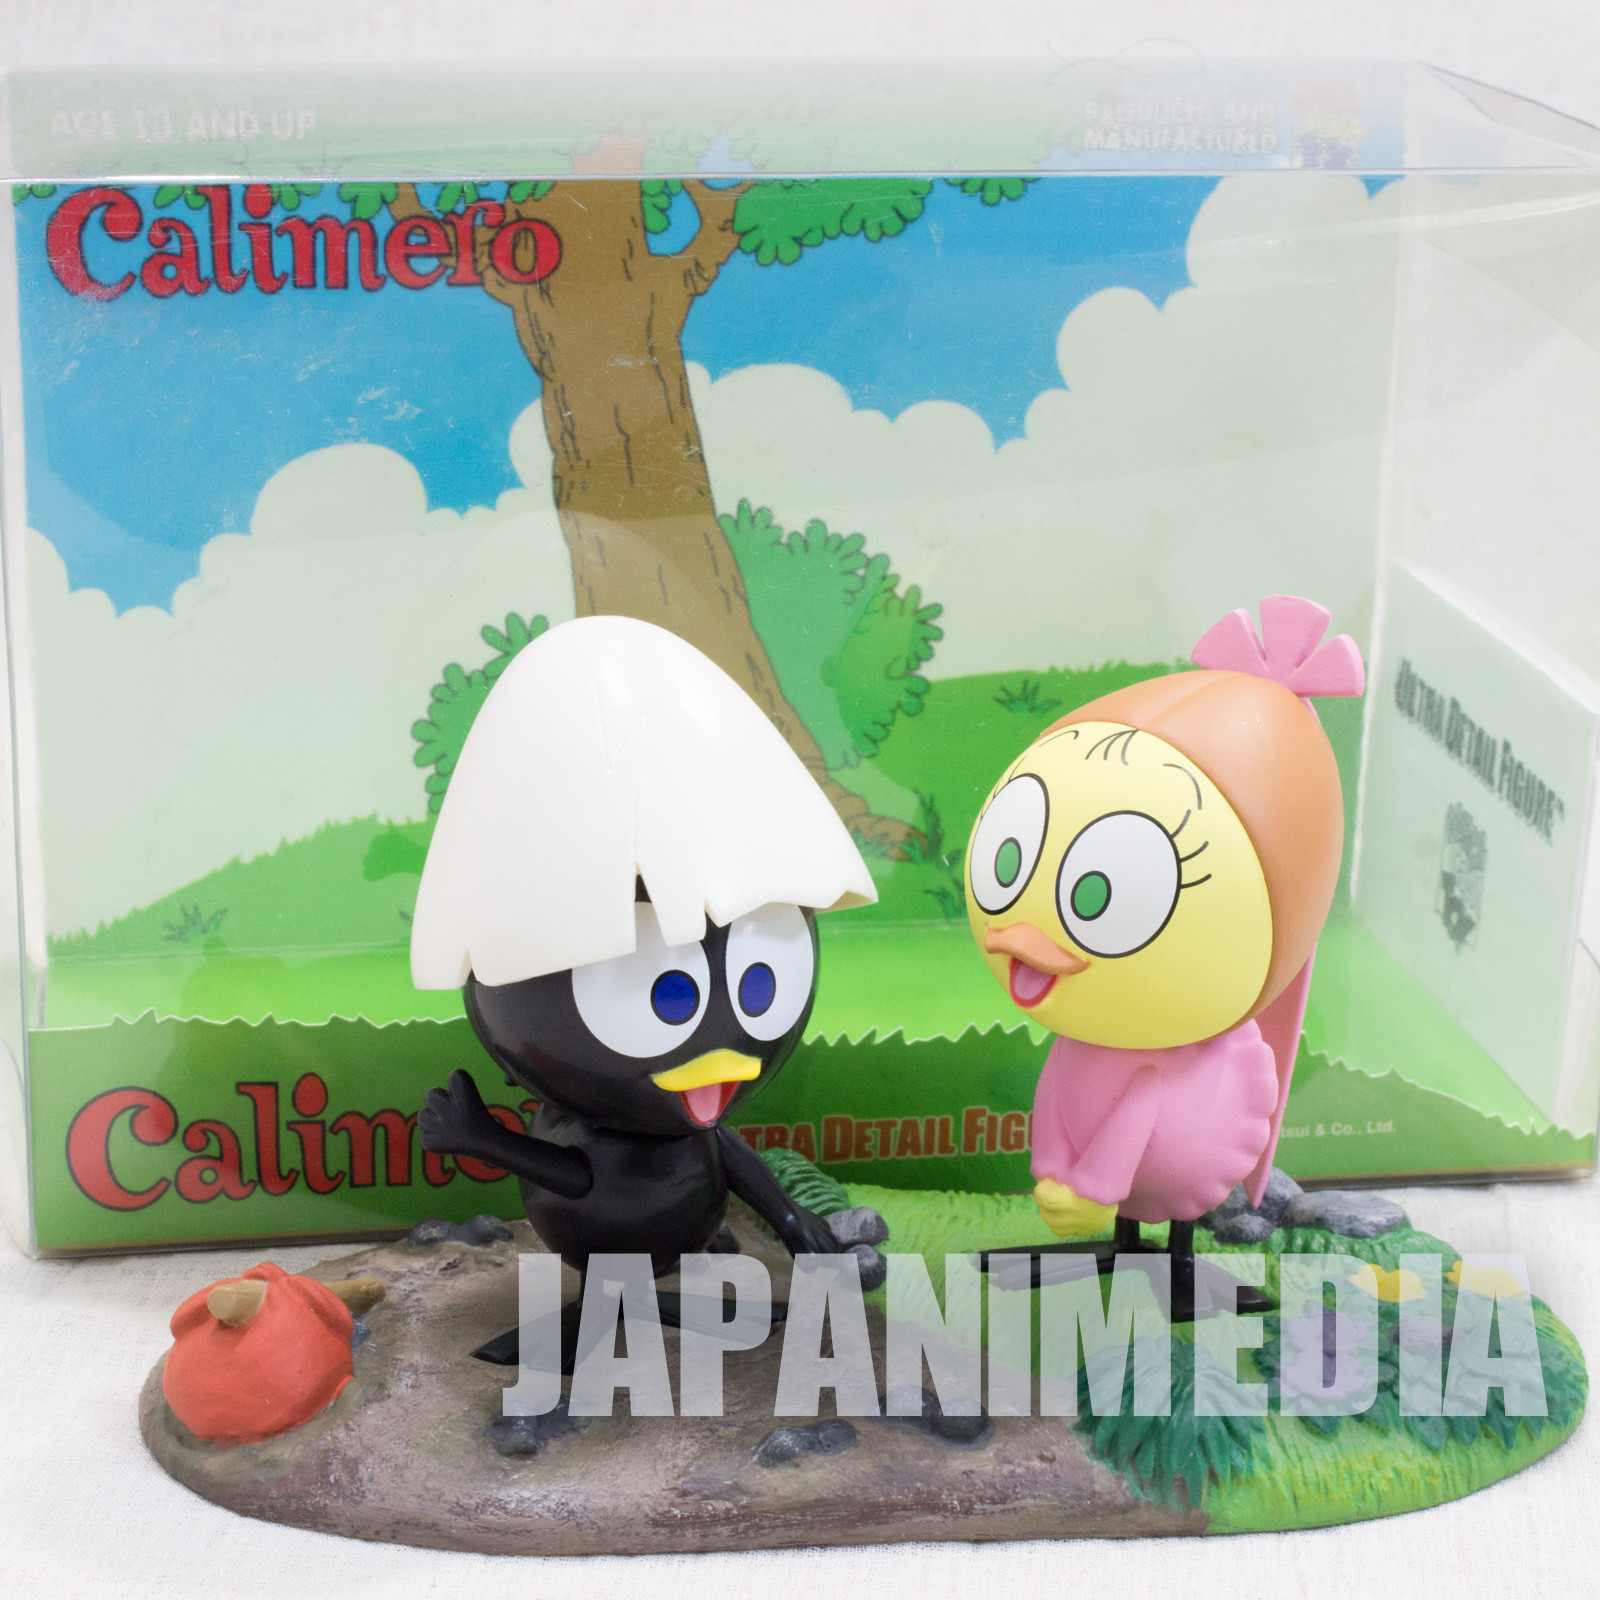 Calimero Calimero & Priscilla Ultra Detail Figure Medicom Toy JAPAN ANIME